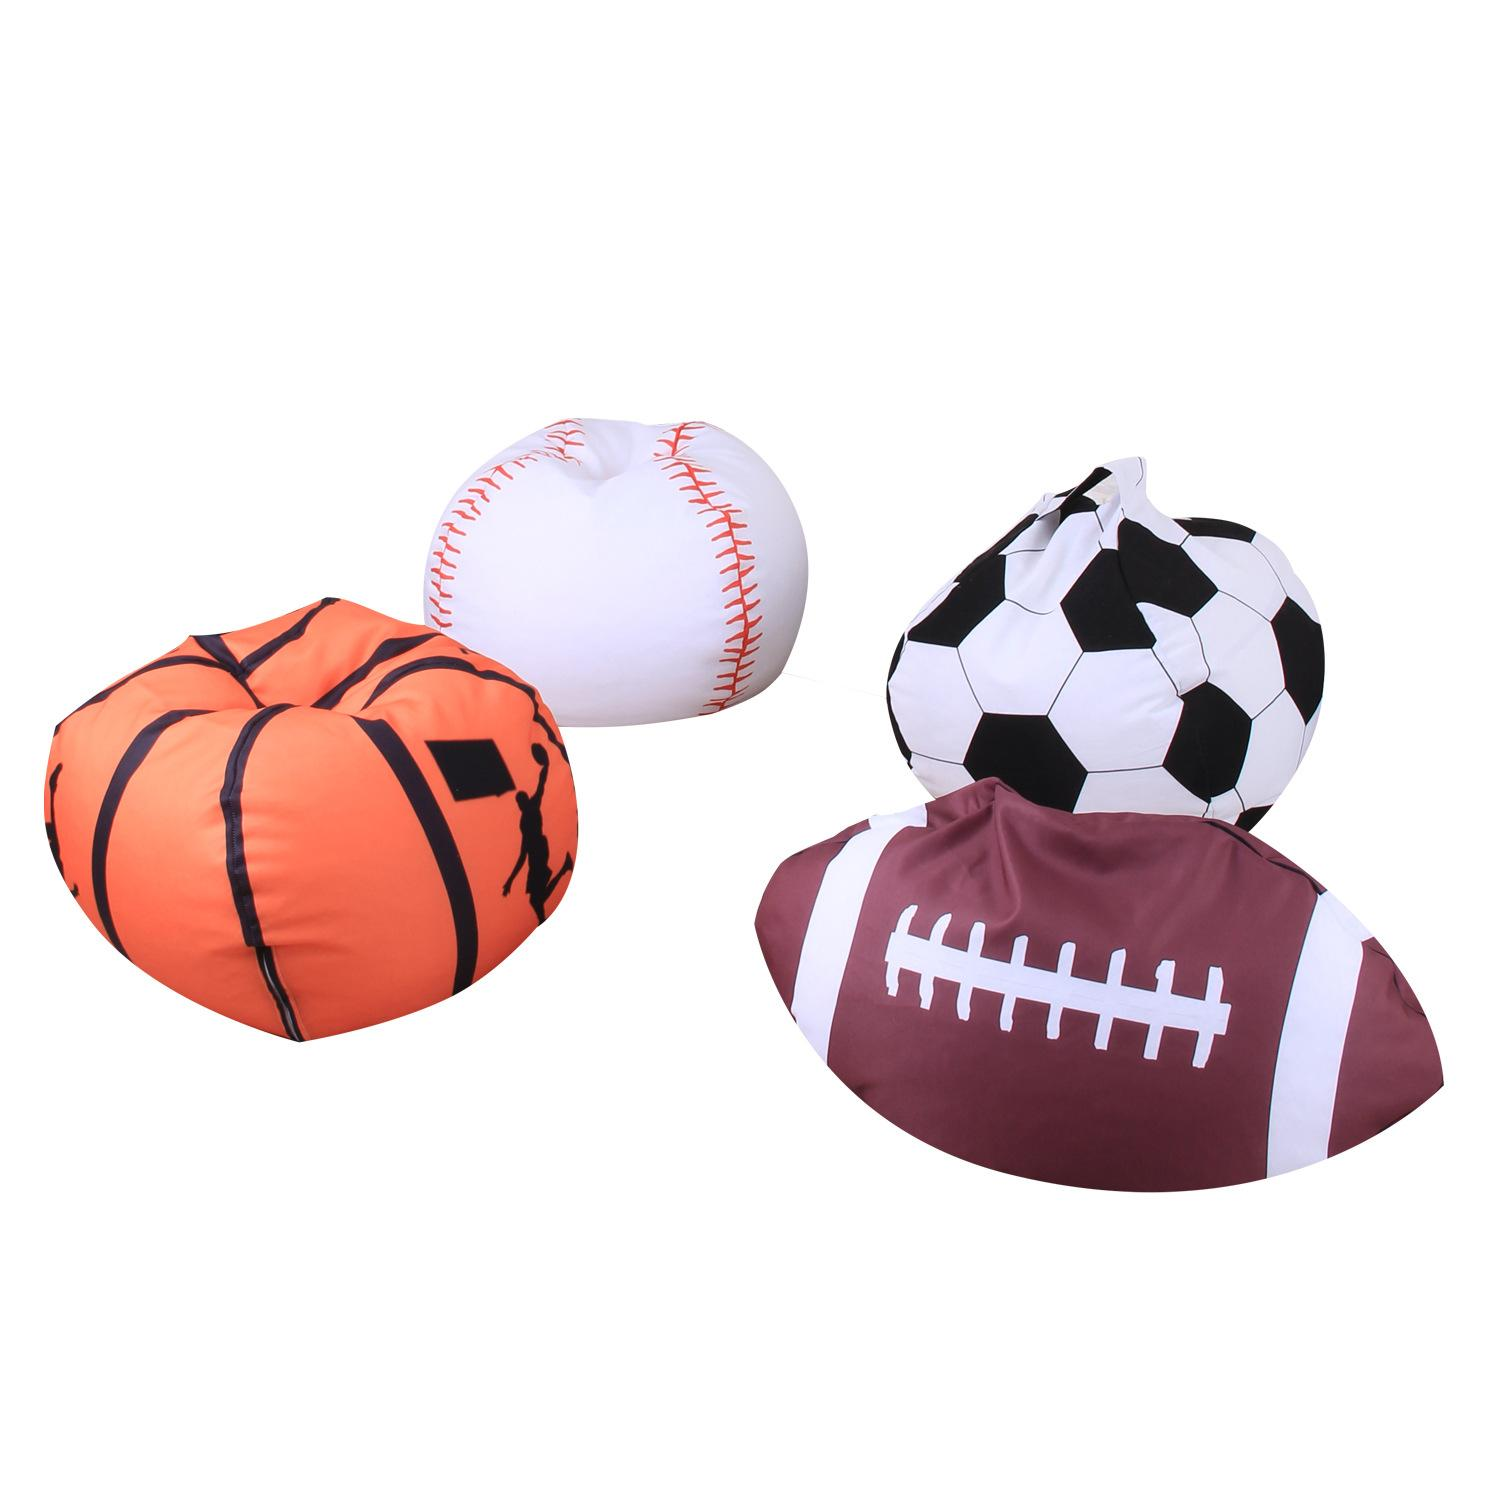 26 Inch Kids Plush Storage Bean Bags Basketball Plush Toys Baseball Beanbag  Chair Bedroom Stuffed Football Room Mats Portable Rugby Clothes Bags For  Little ...